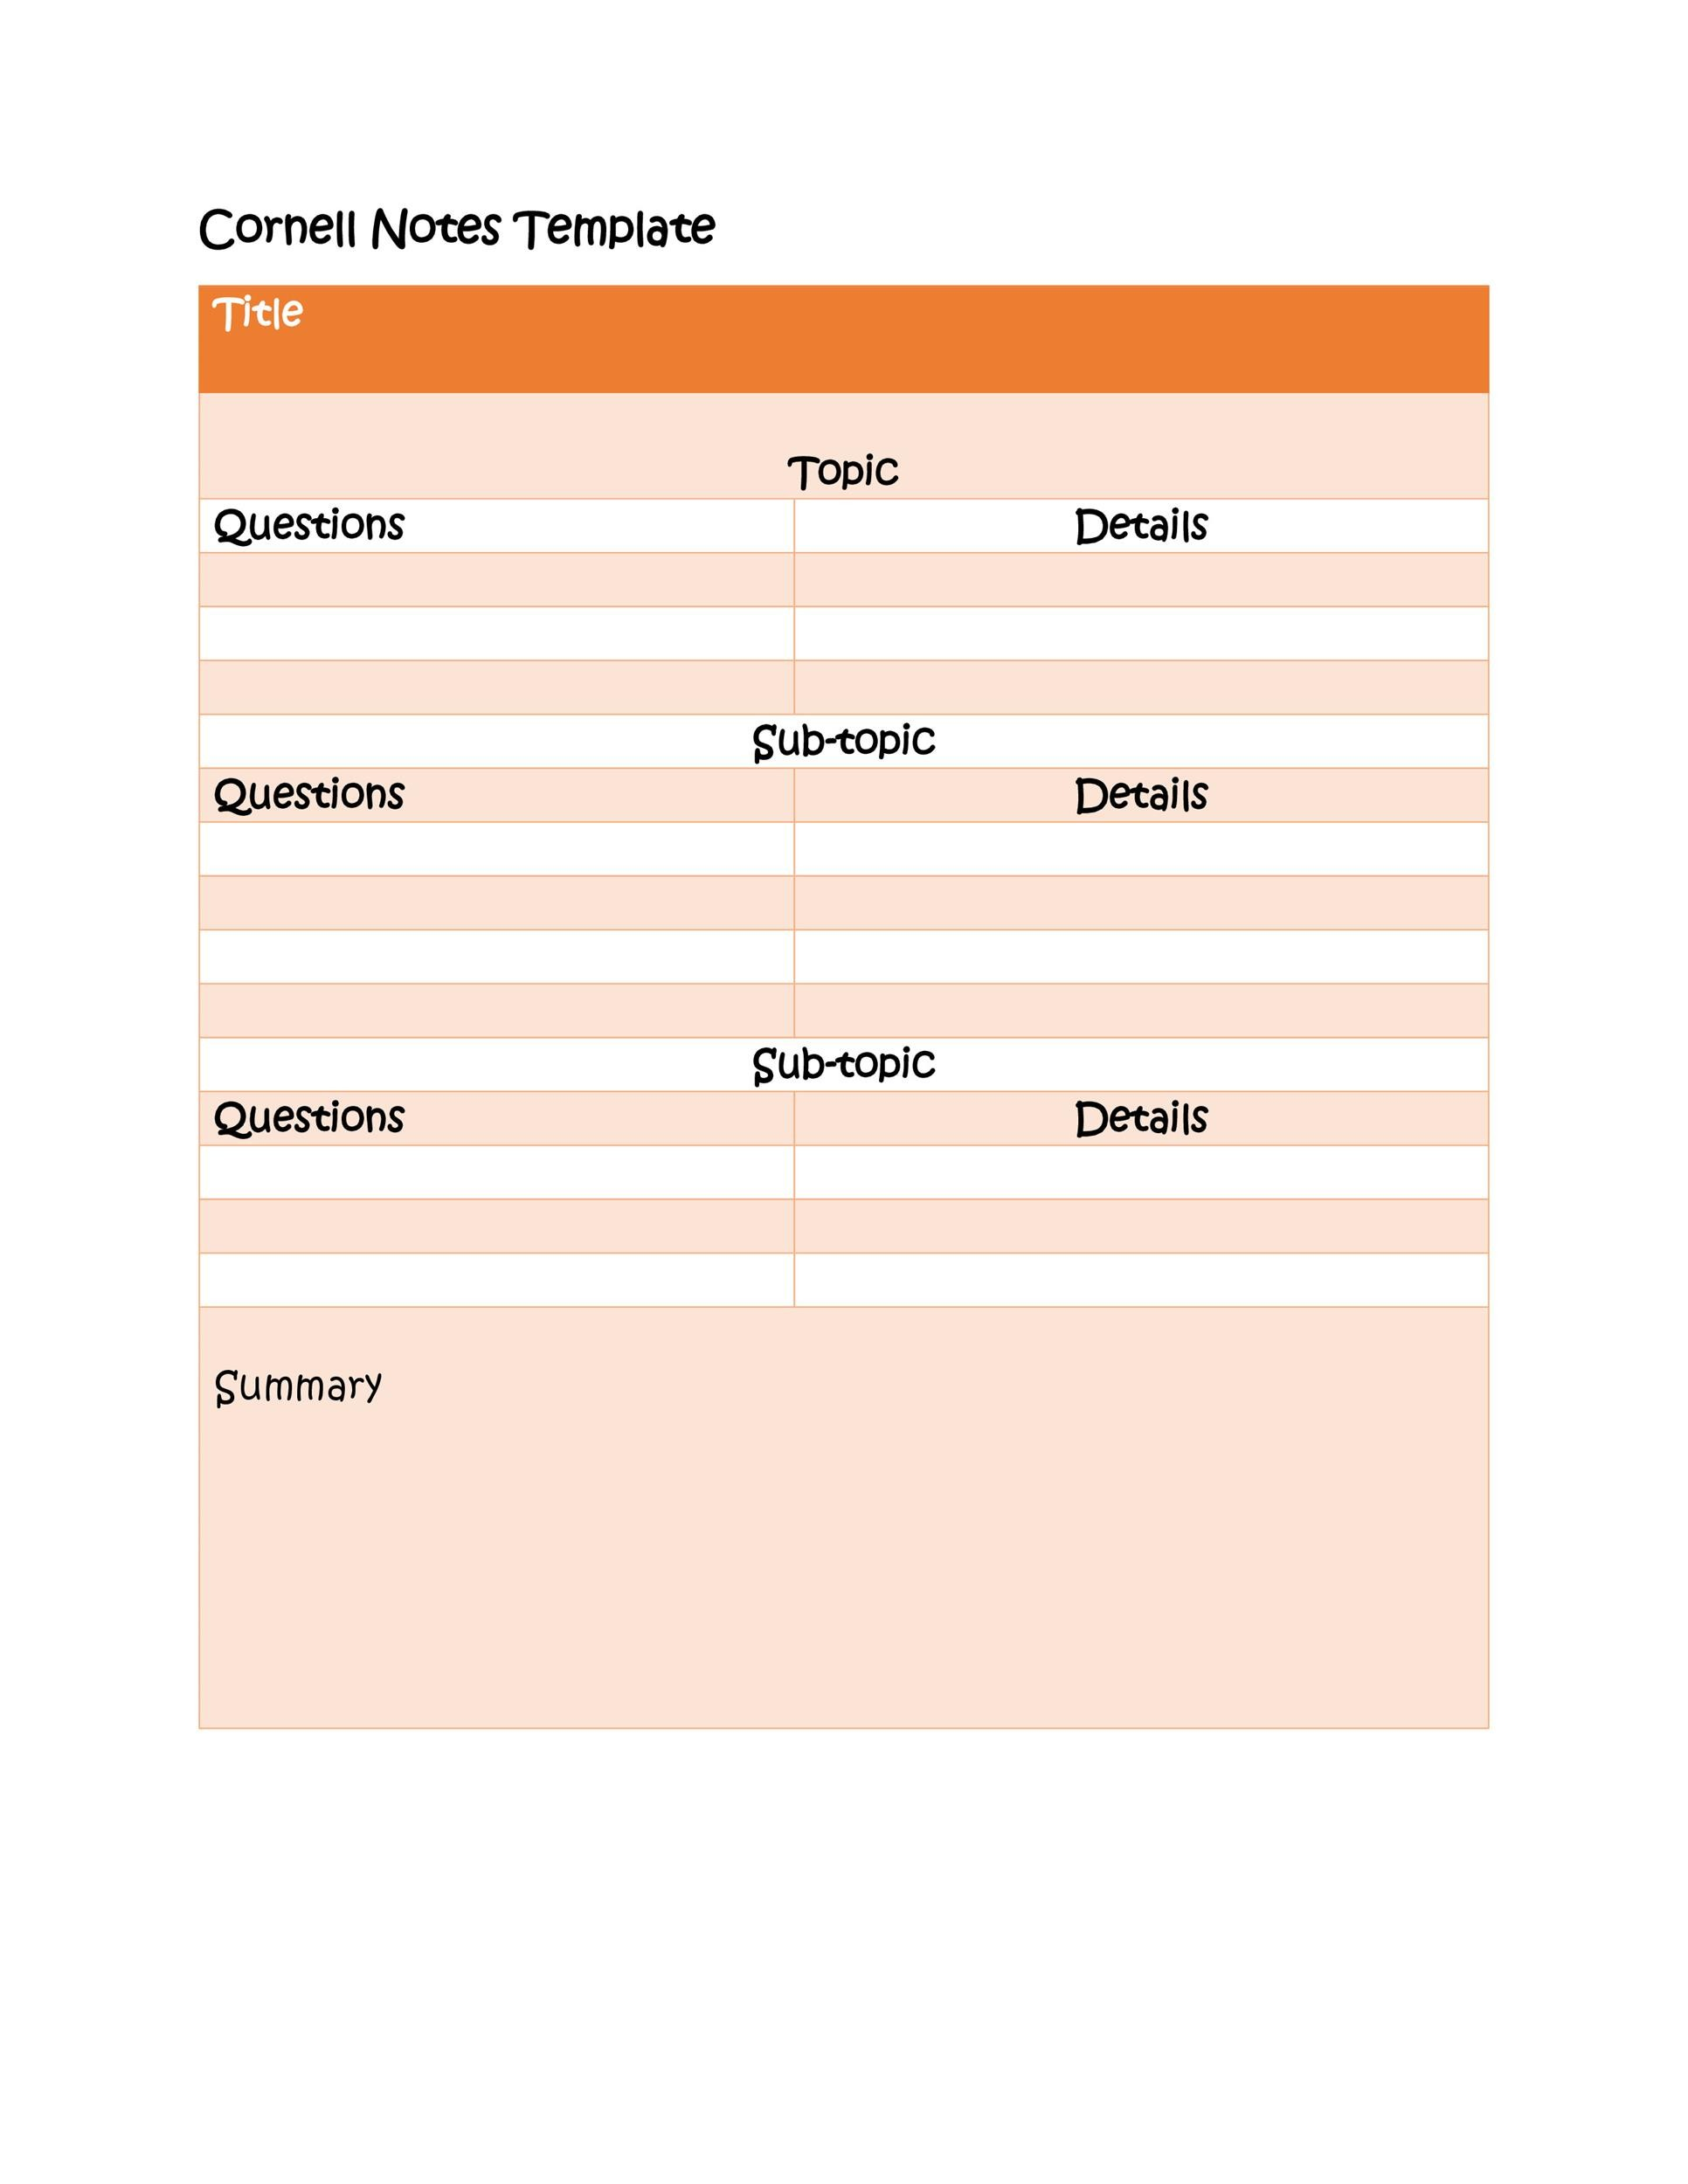 Free Cornell Notes Template 26